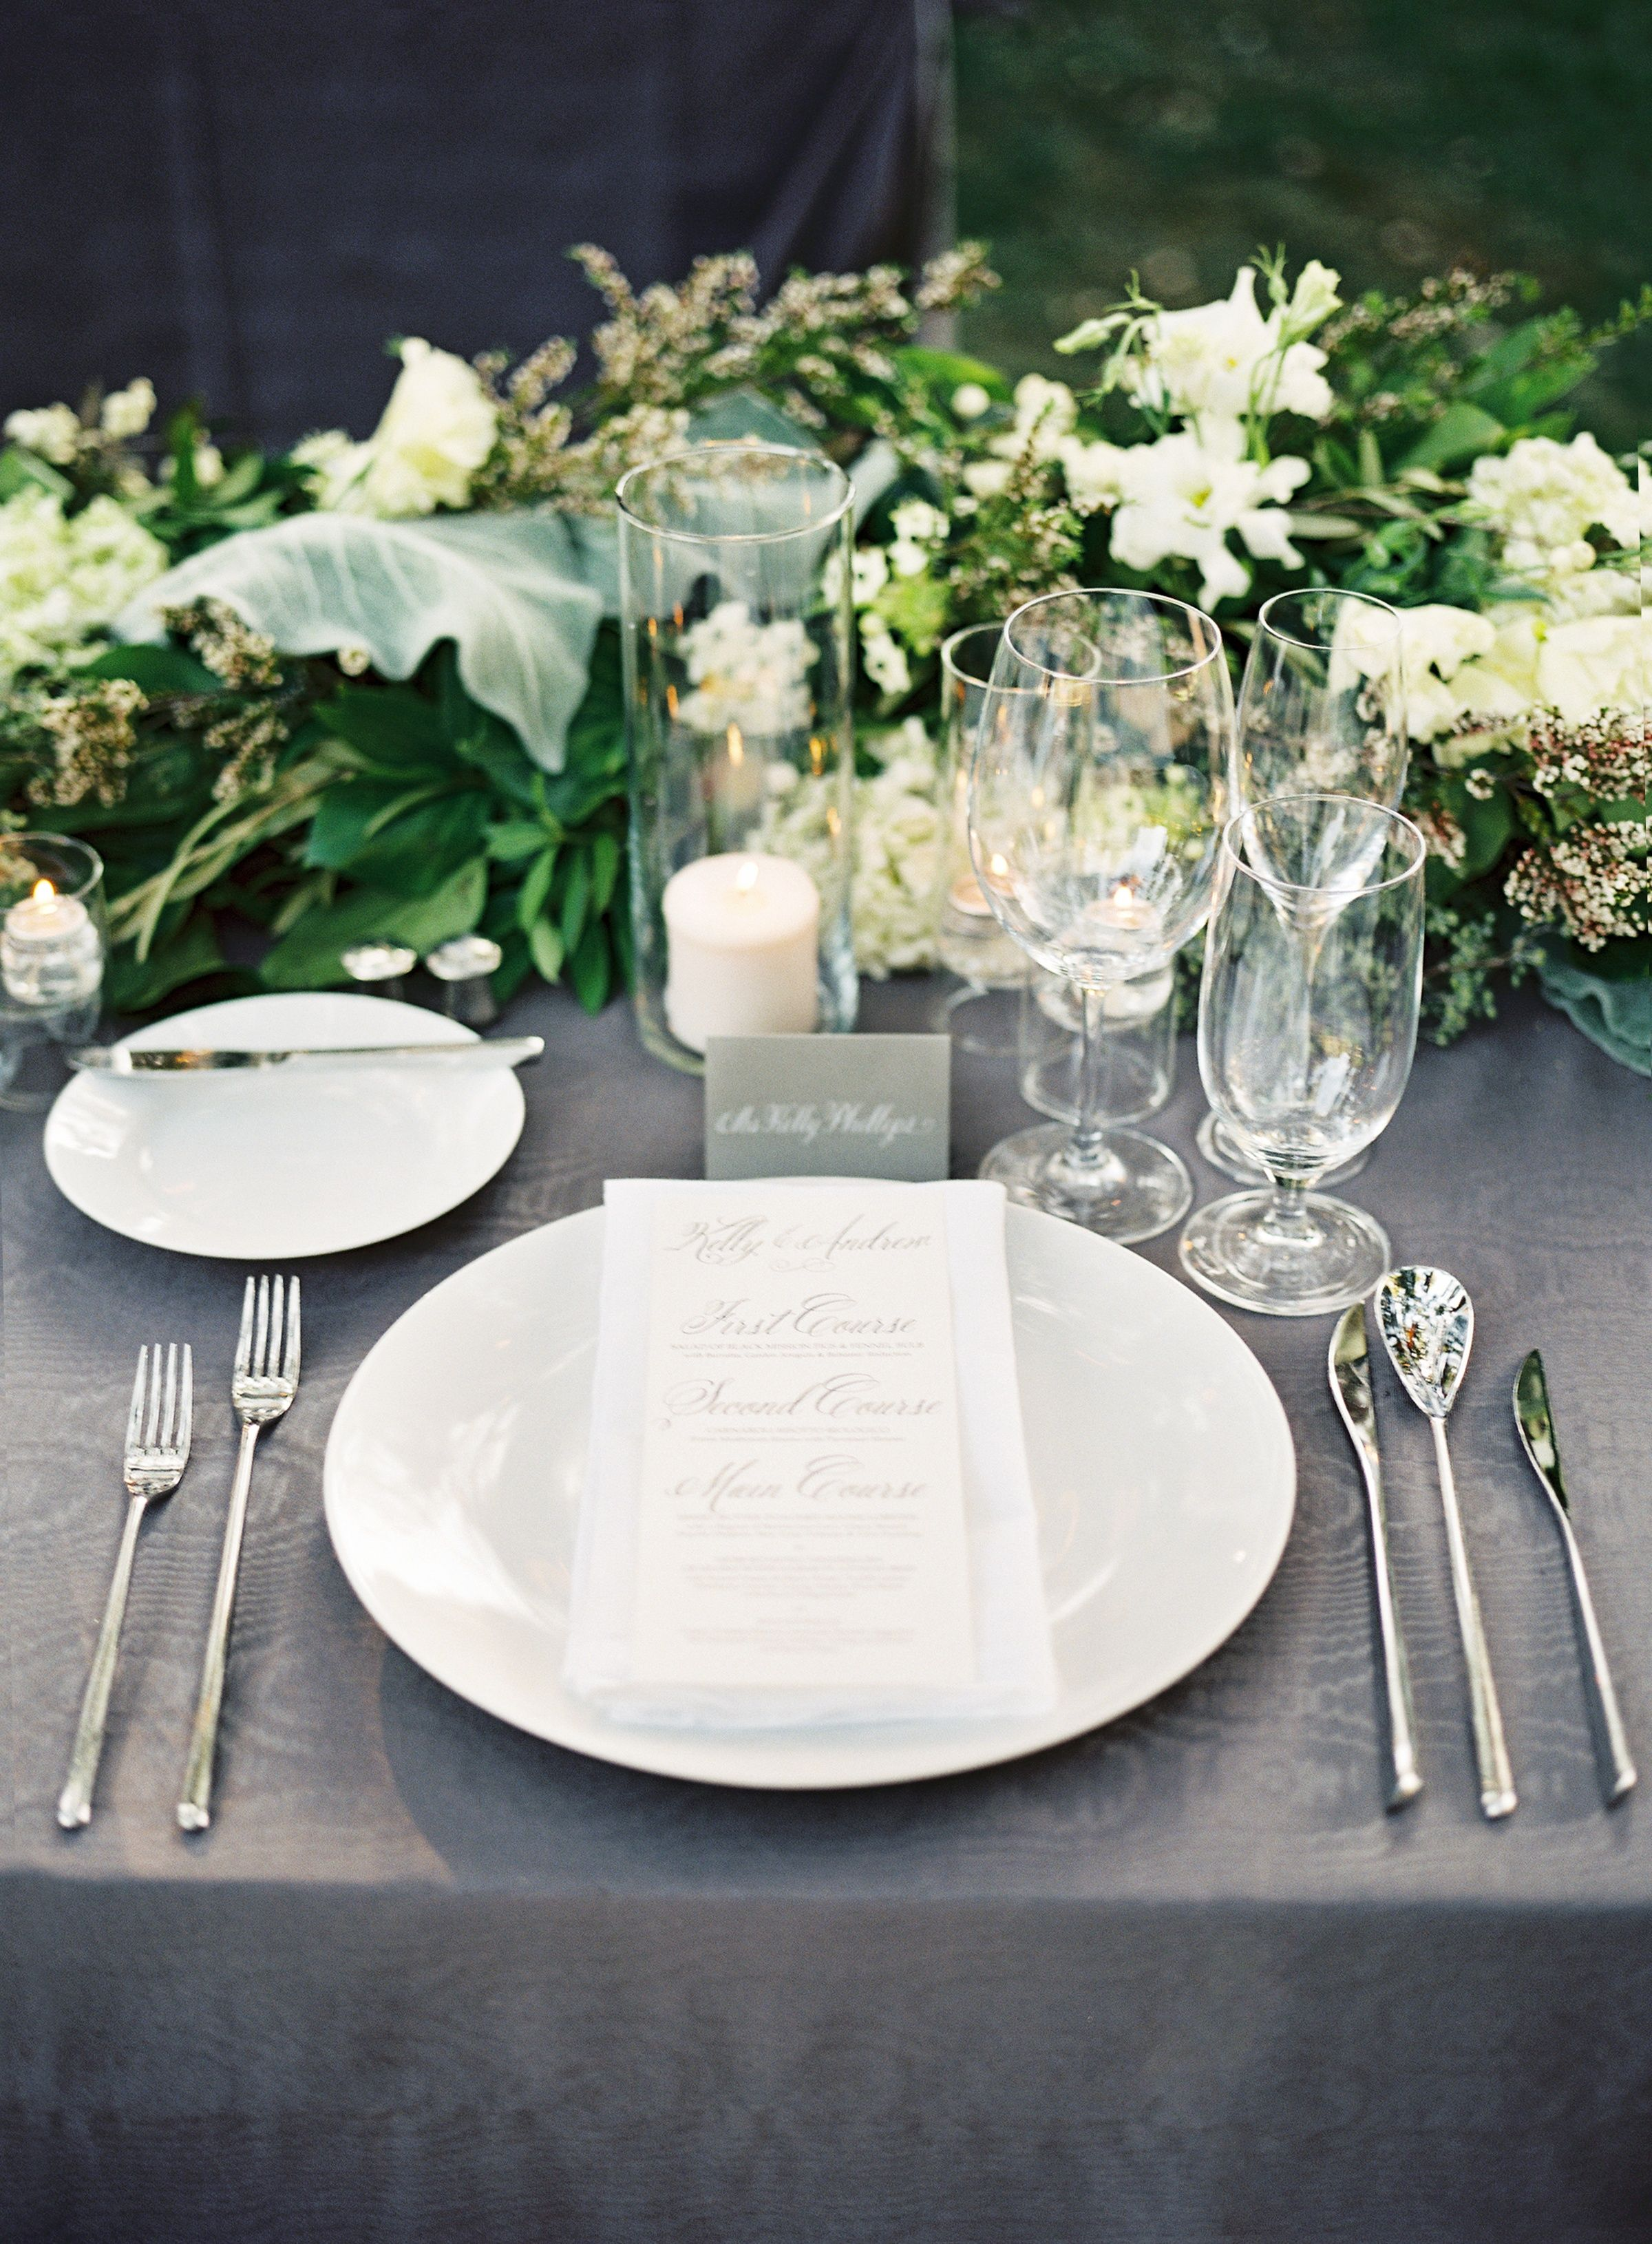 Delicieux Elegant Gray And White Place Settings | Steve Steinhardt Photography |  TheKnot.com